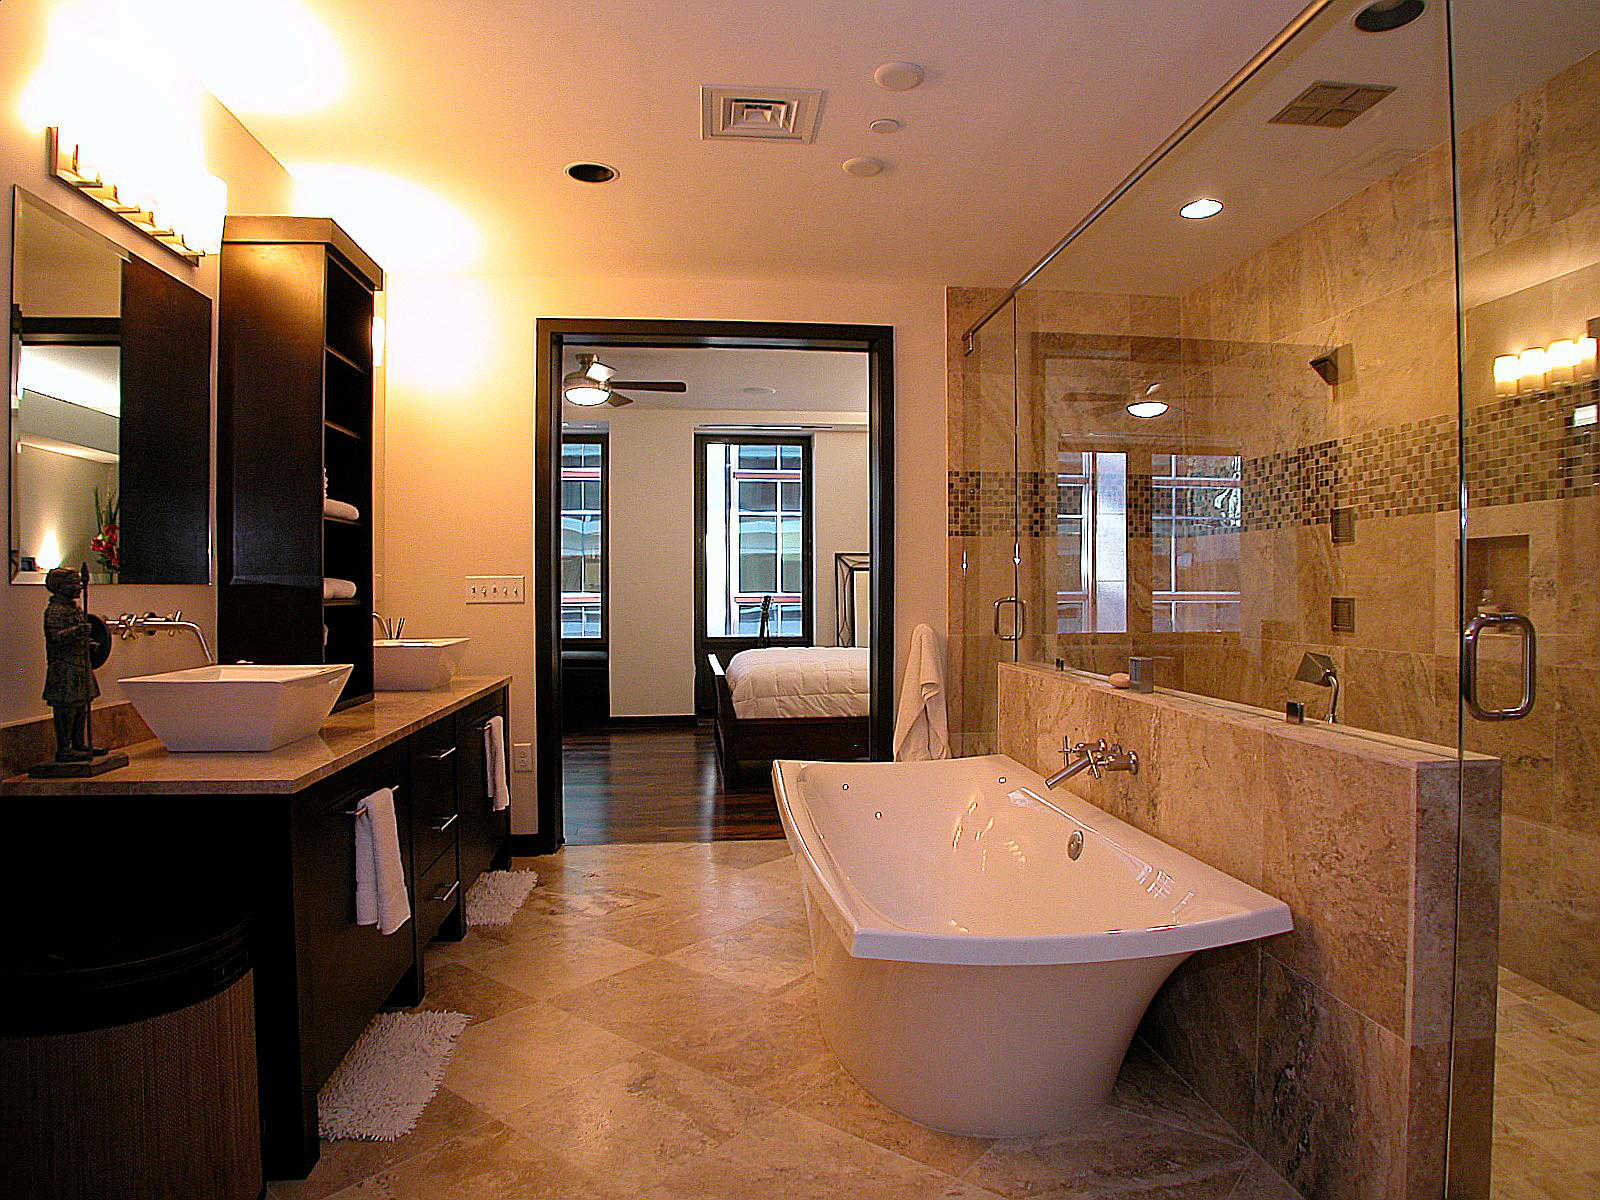 The trust condos the trust condominiums charlotte for Master bath pictures